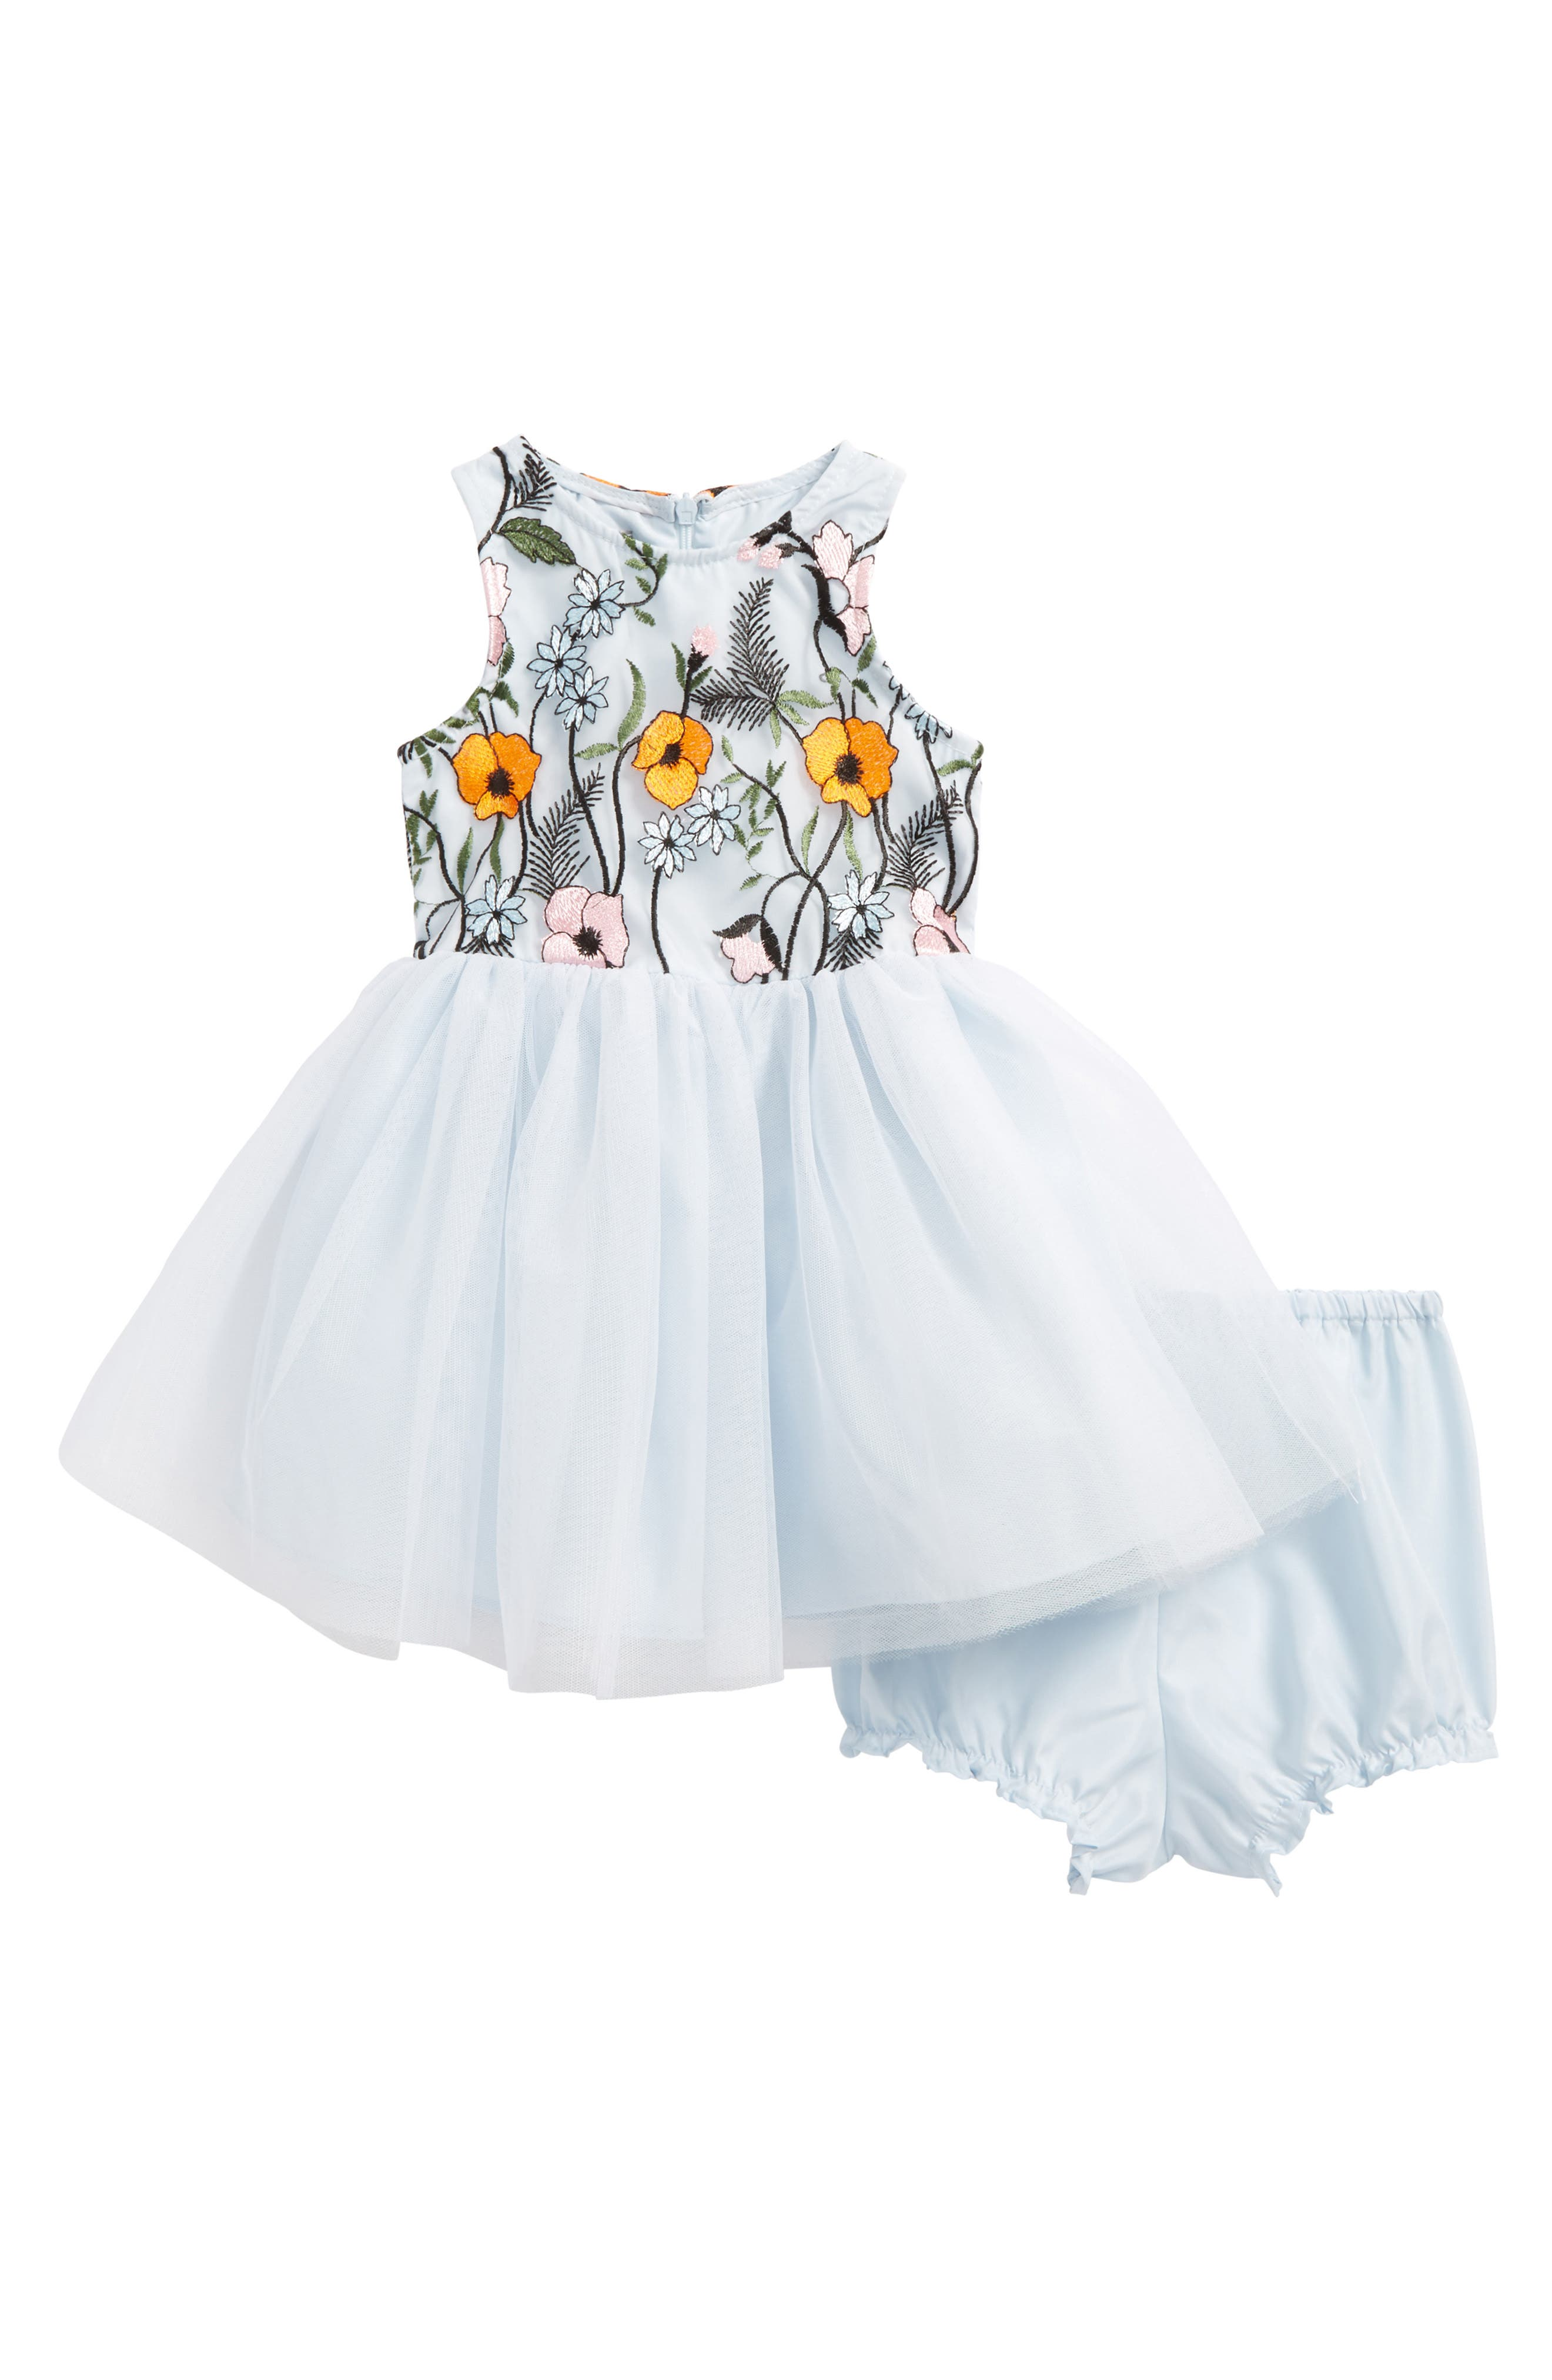 Alternate Image 1 Selected - Pippa & Julie Embroidered Floral Tulle Dress (Baby Girls)